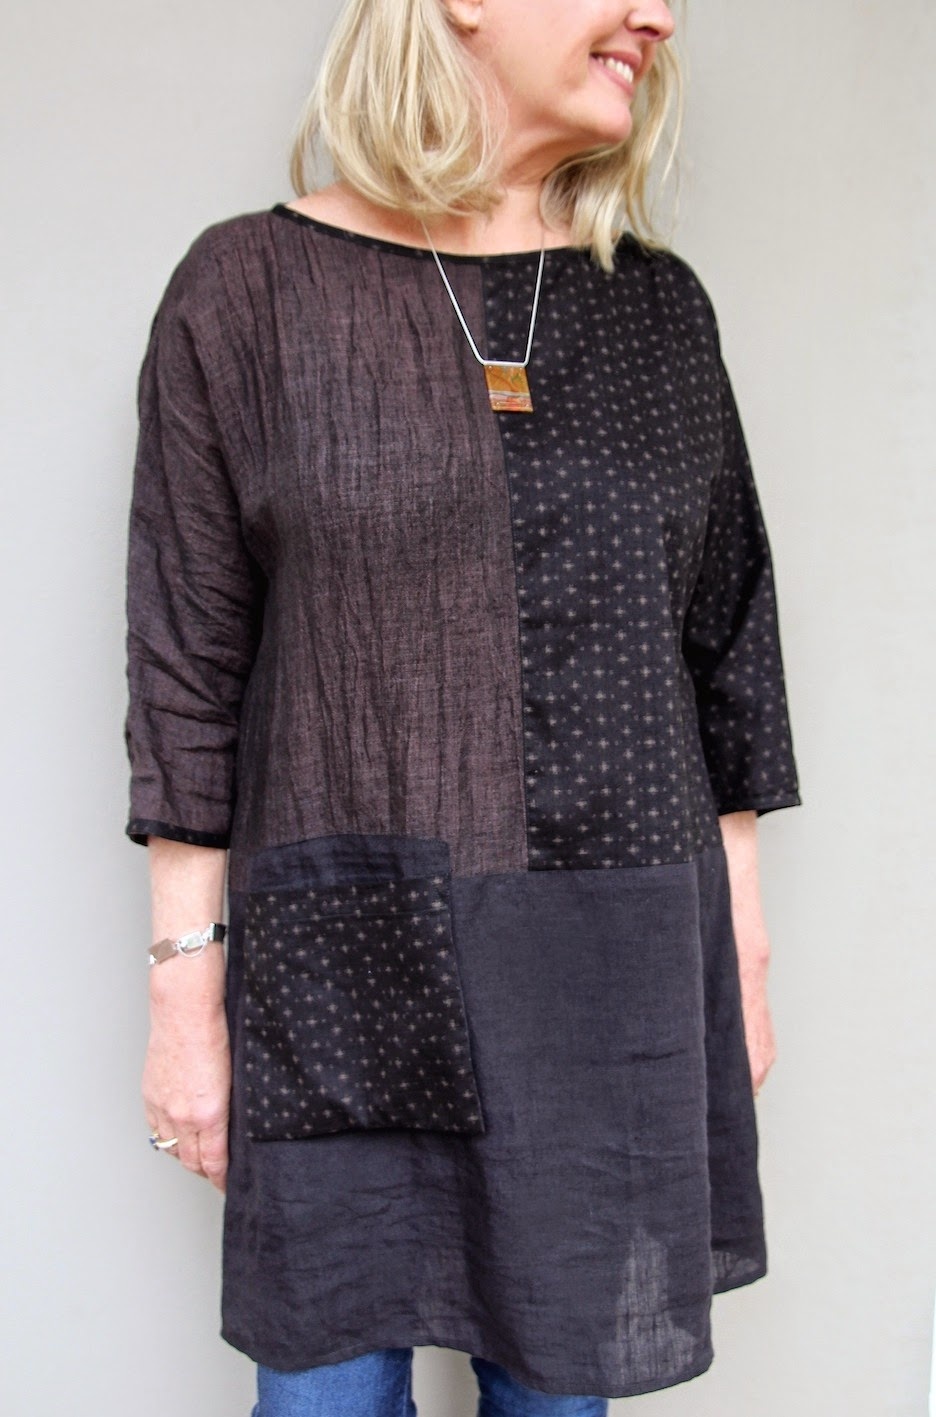 Our Top 10 Quick Breakfast Recipes: Our NEW Pattern - The Ola Tunic Top!